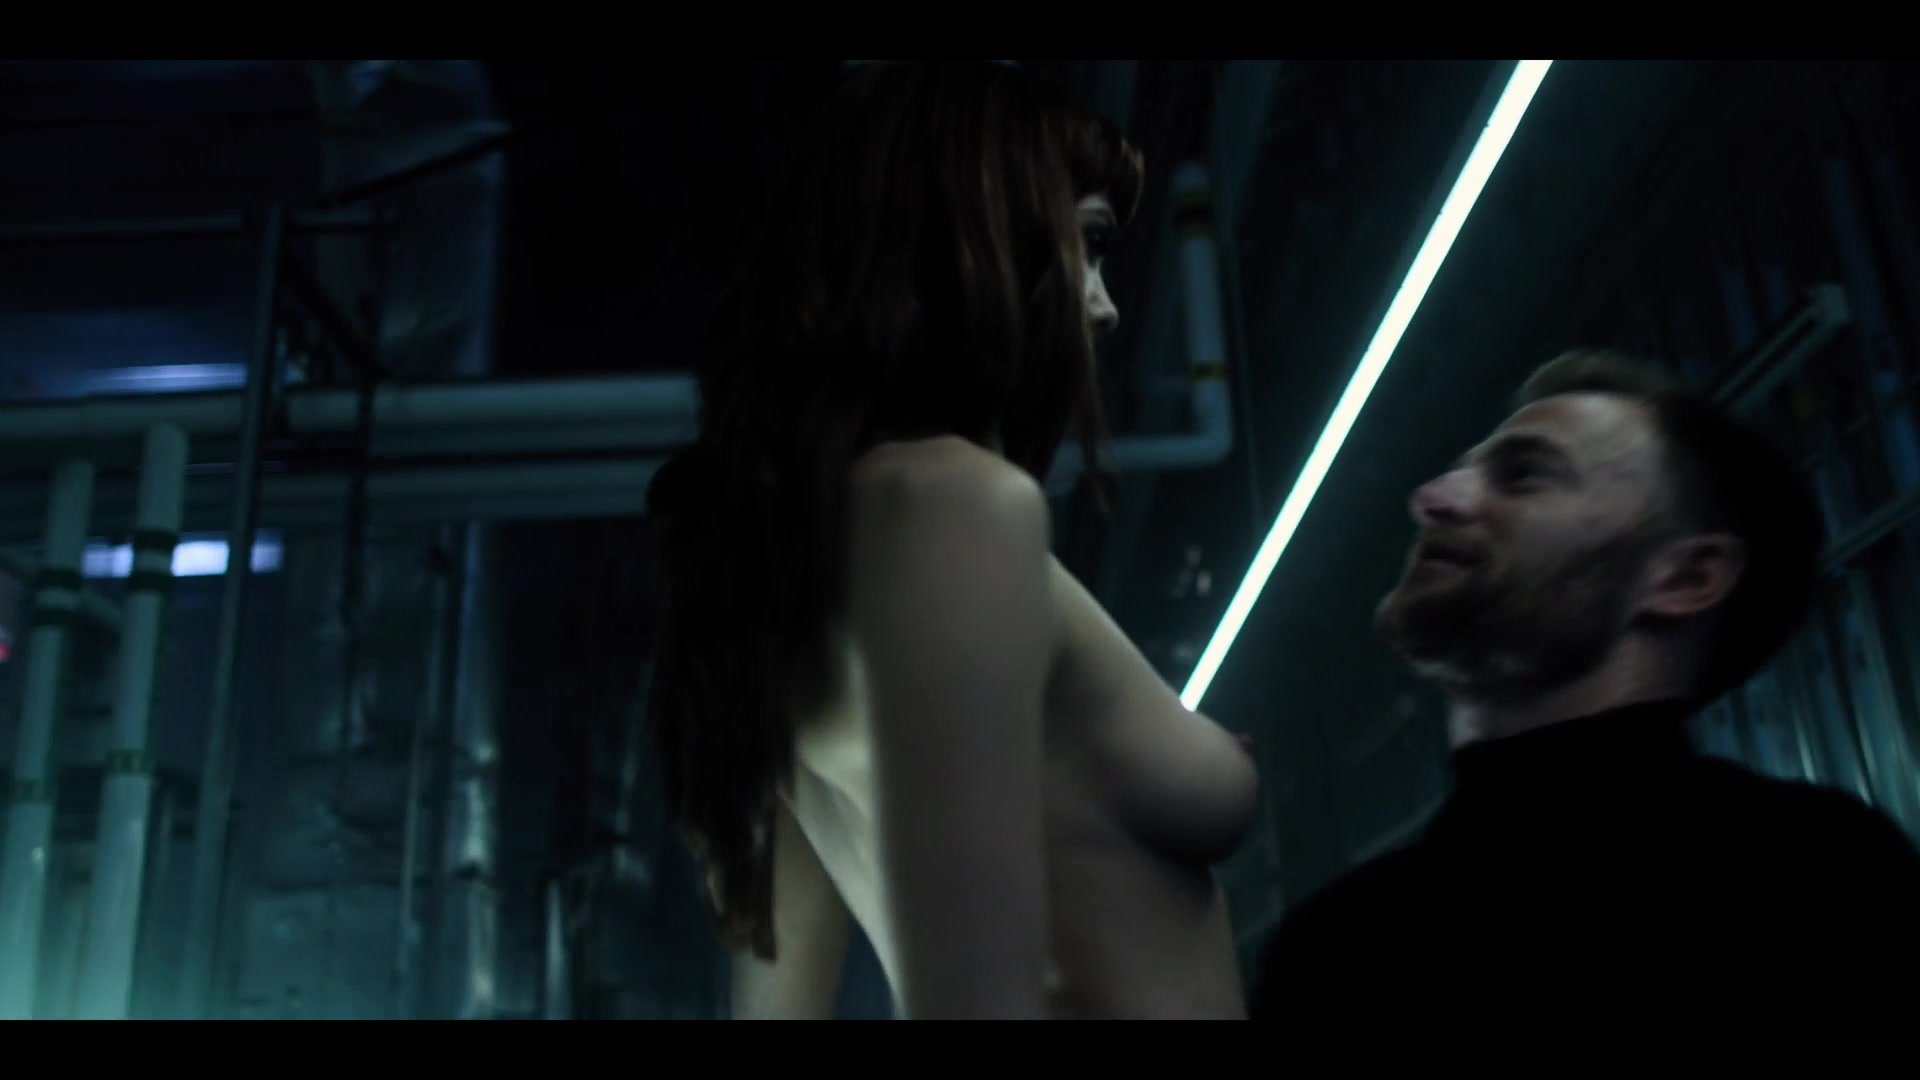 Hannah Rose May nude, Hayley Law nude - Altered Carbon S01 E10 (2018)